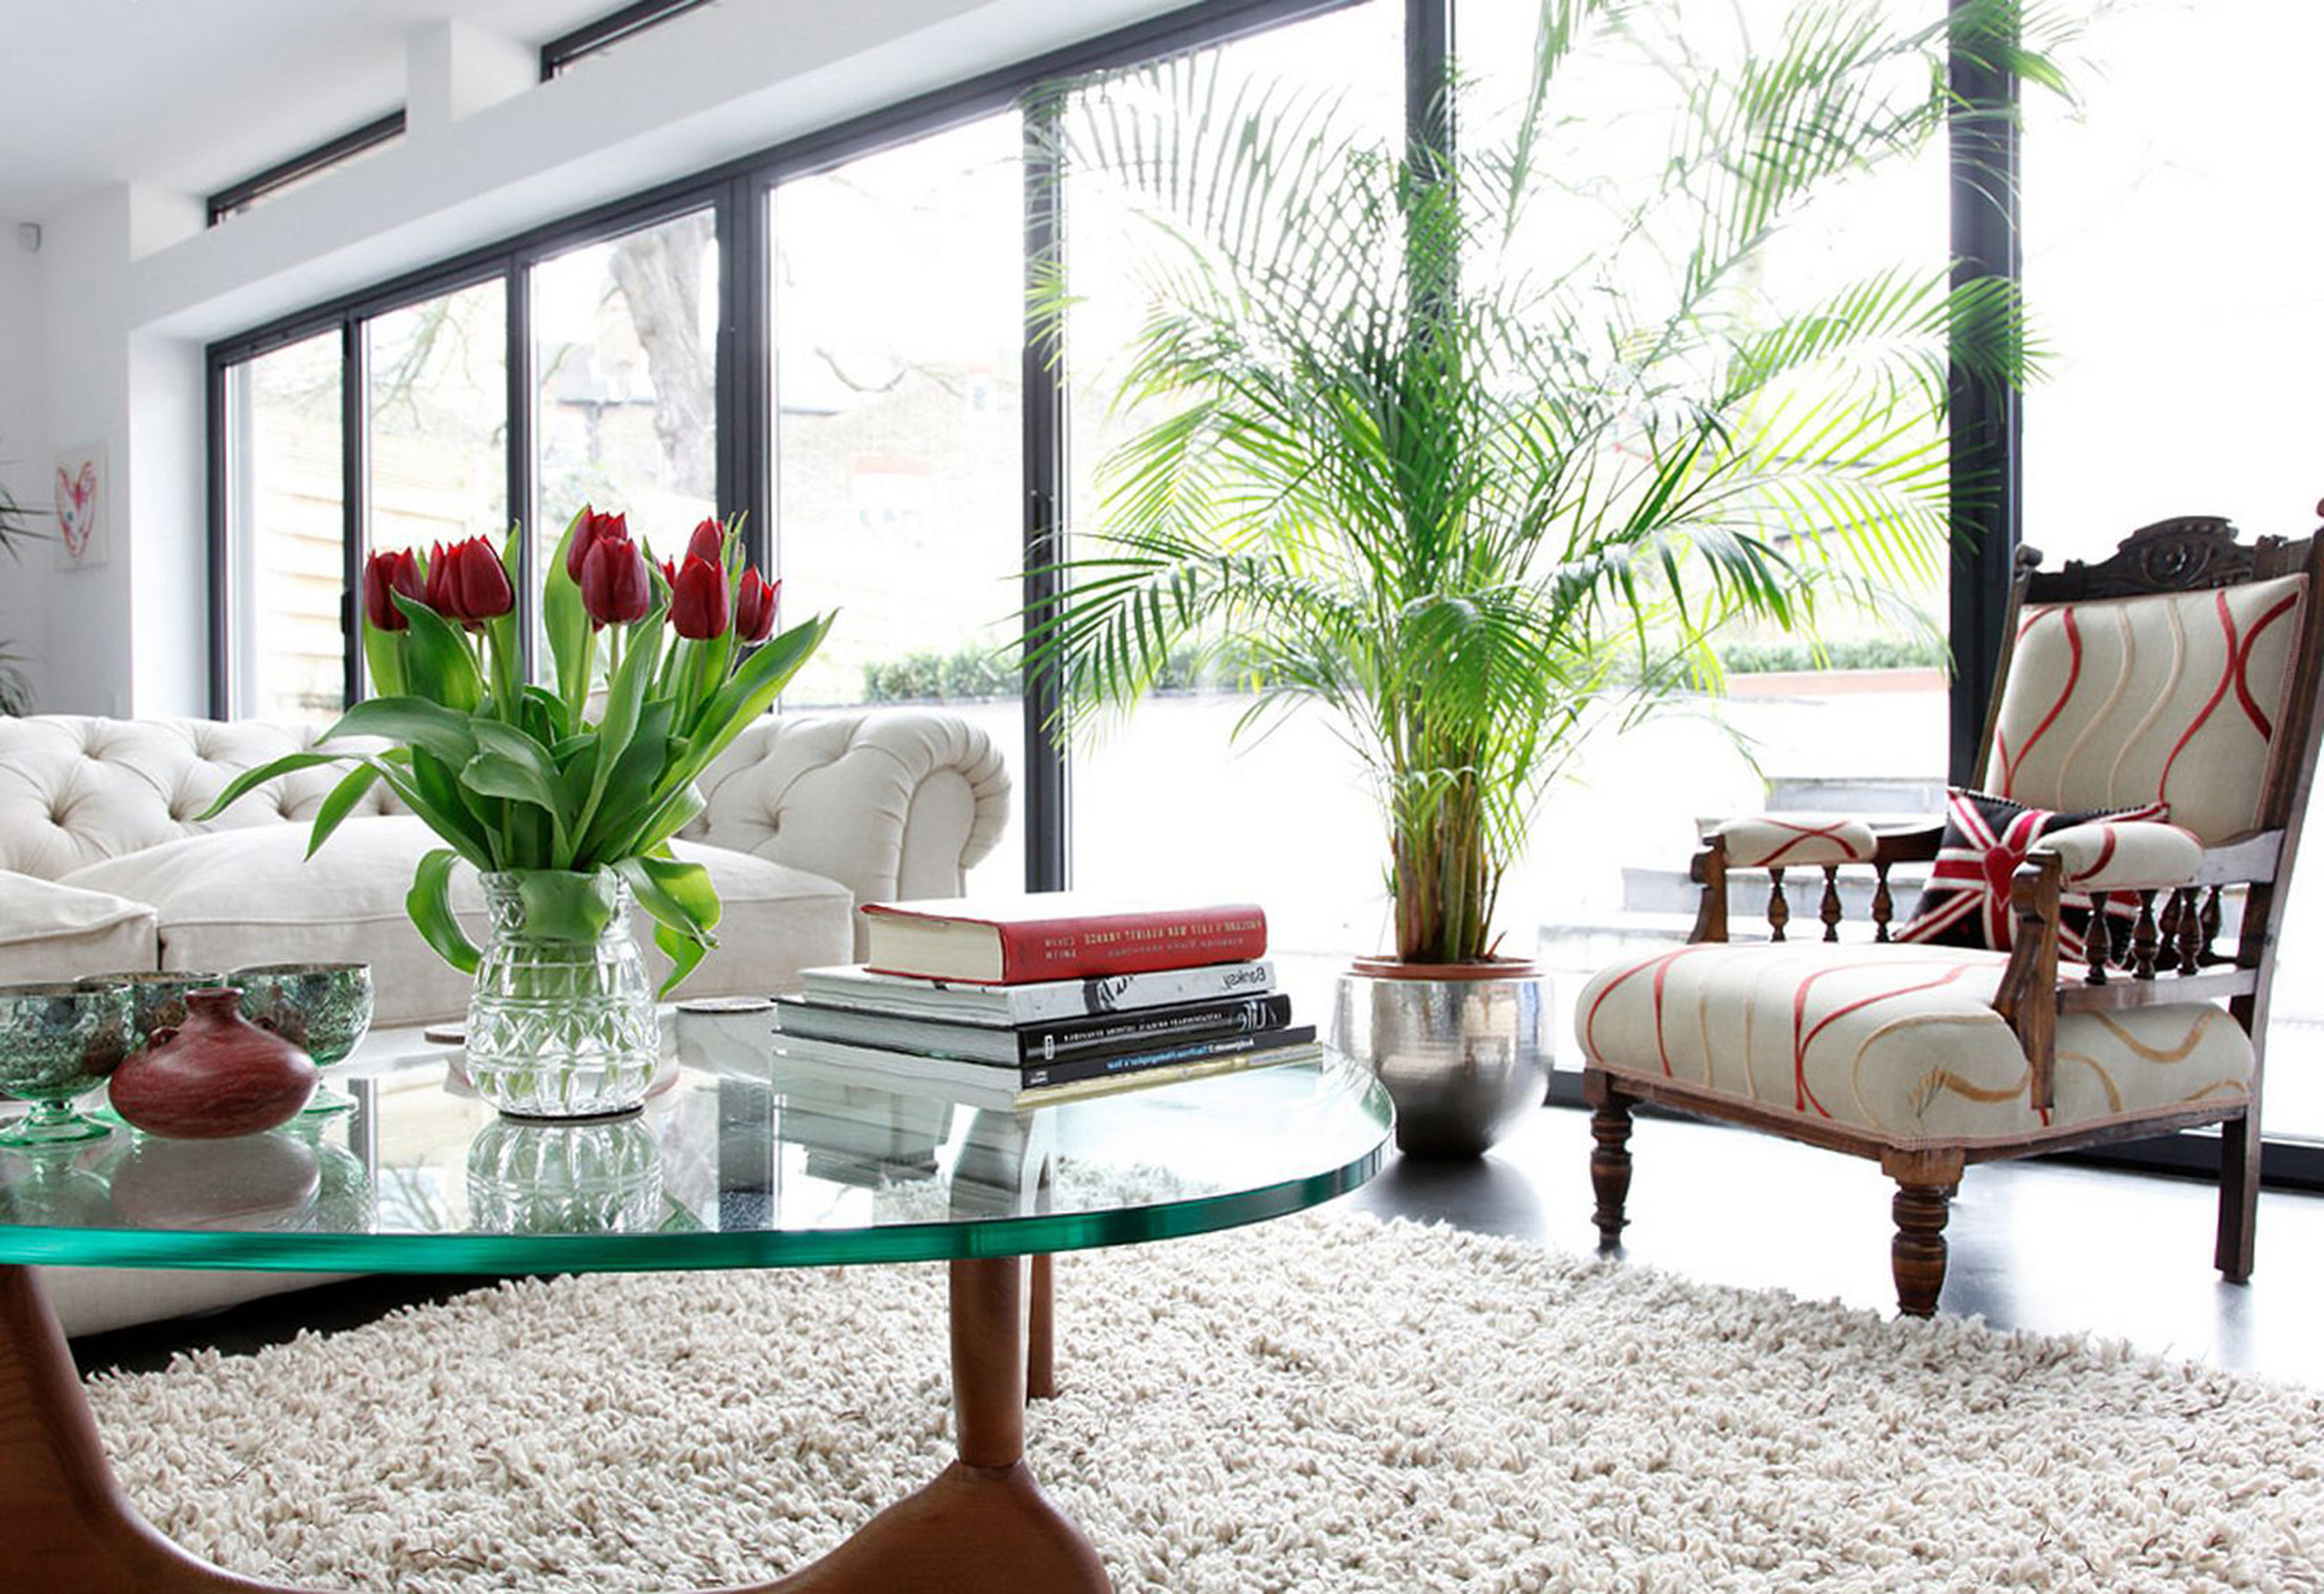 Apartments Decor Of Simple White Sofa Rug With Glass Table With Wall With Indoor Plant (Image 35 of 45)